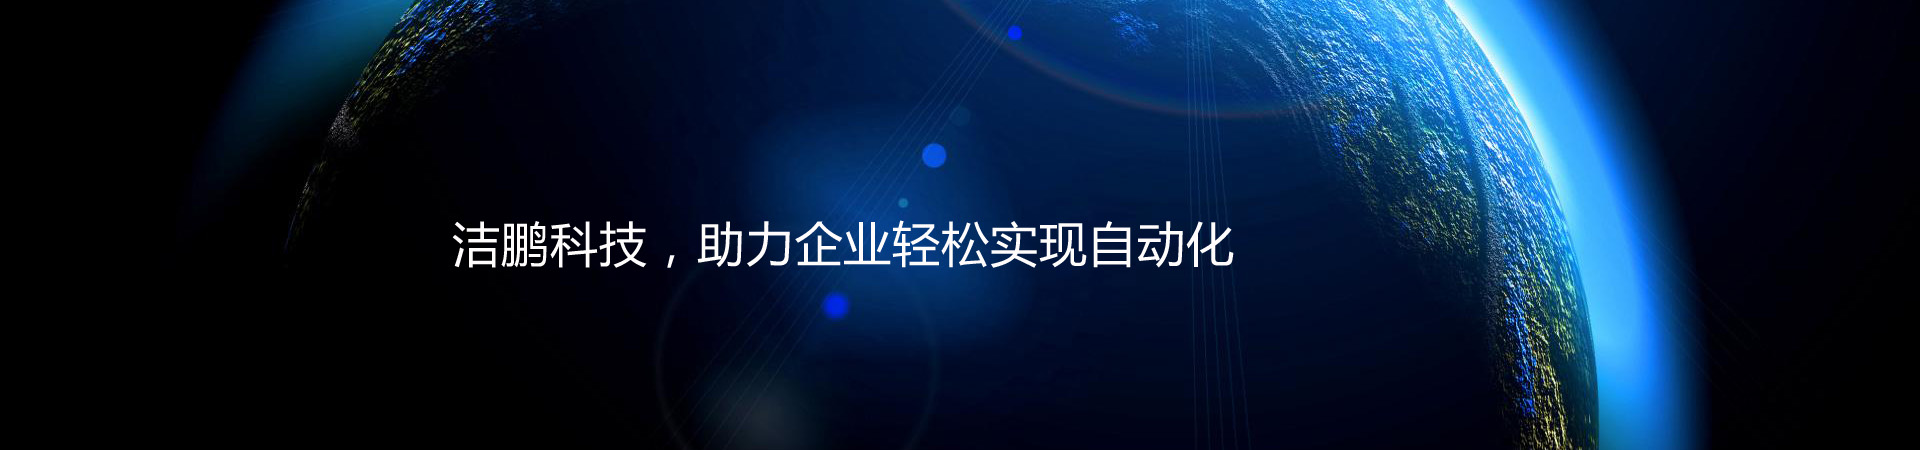 http://www.jptec.com.cn/data/upload/202009/20200927115117_427.jpg